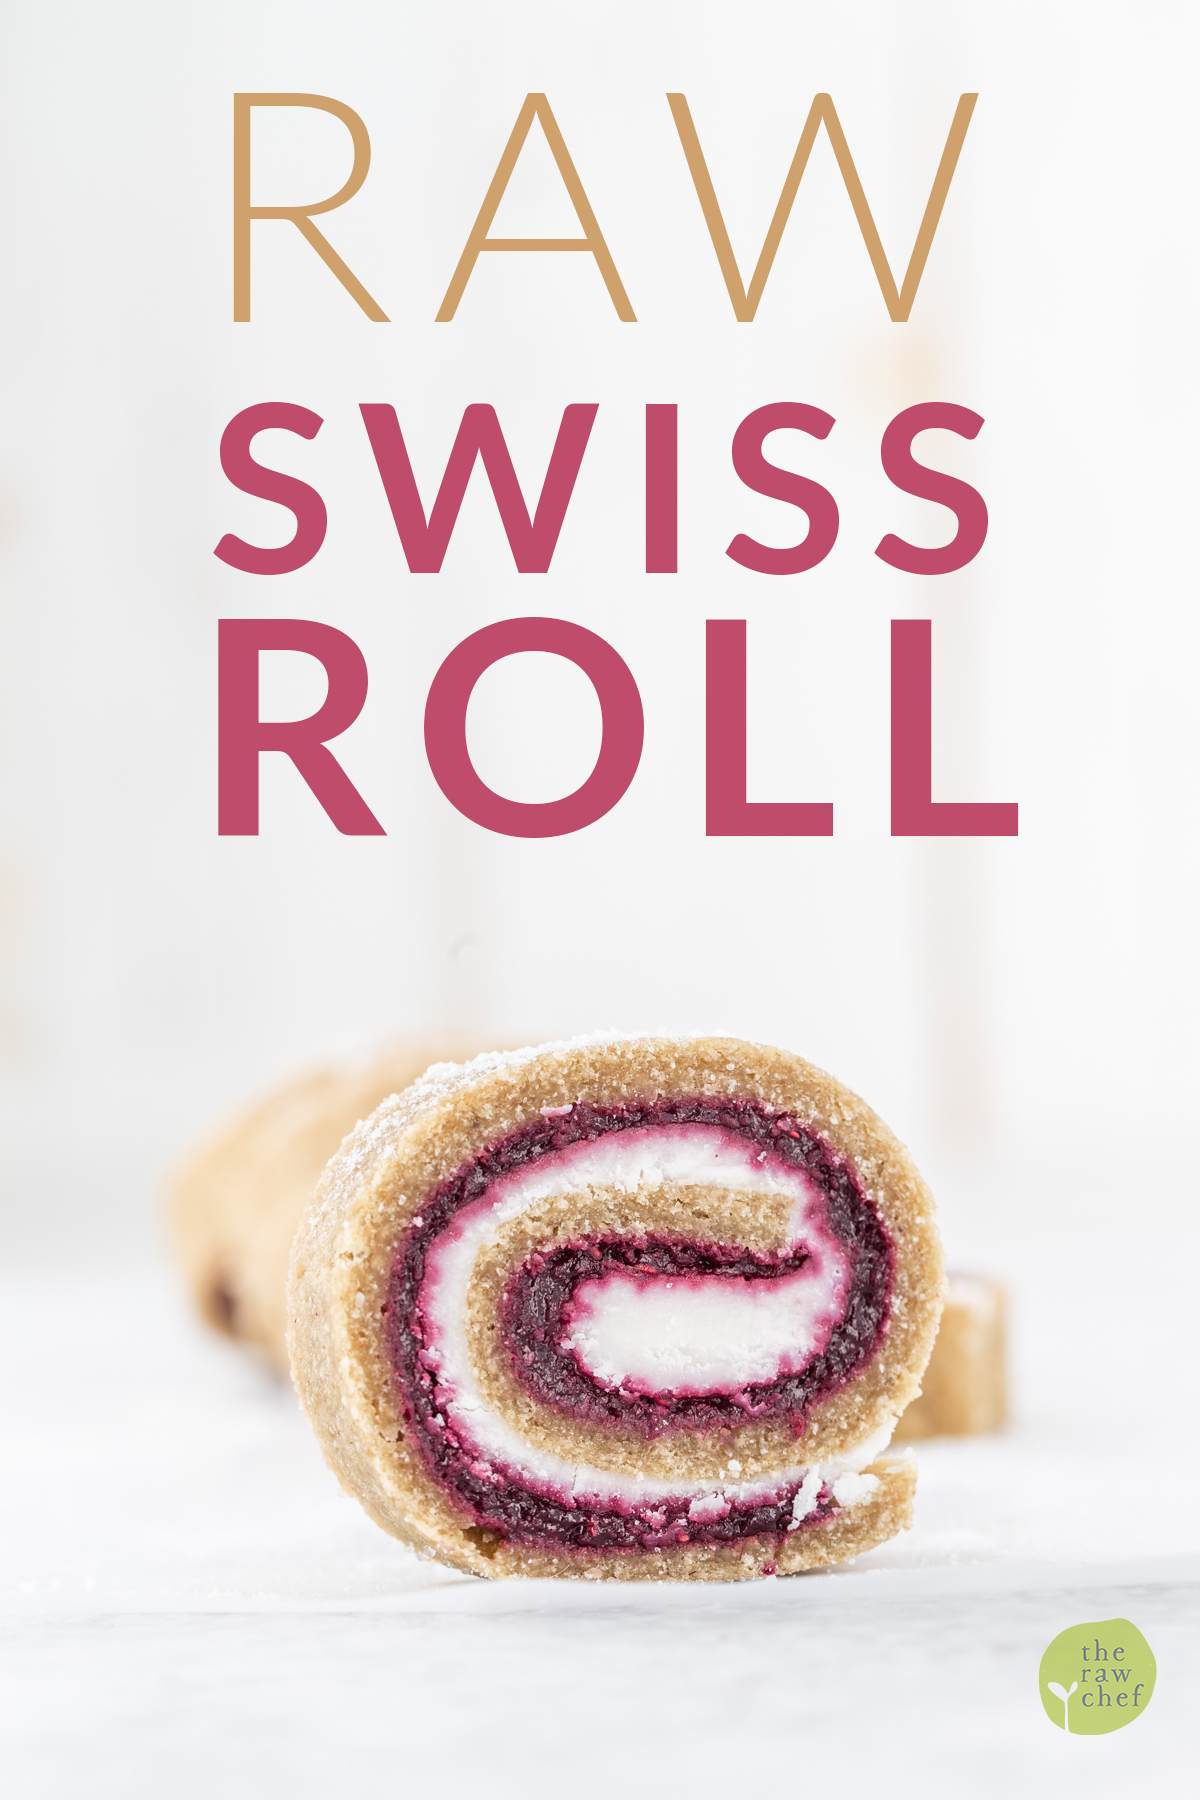 Raw Swiss Roll slice on a white background with text